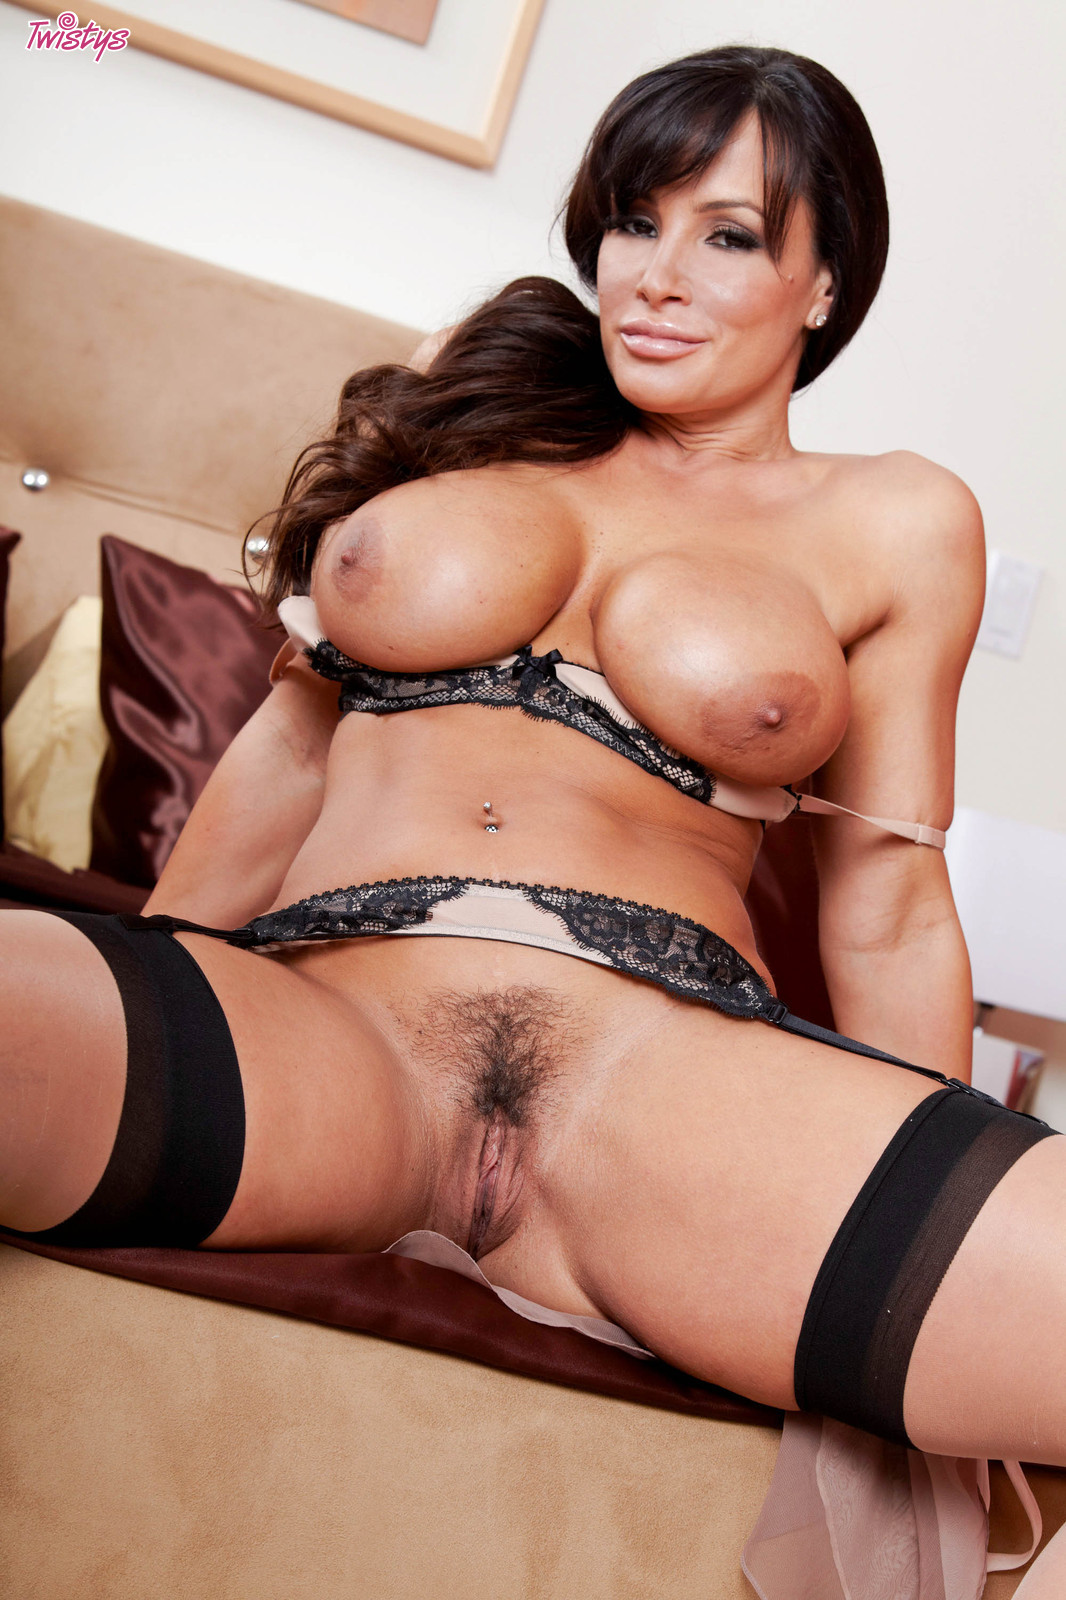 Lisa ann milf where